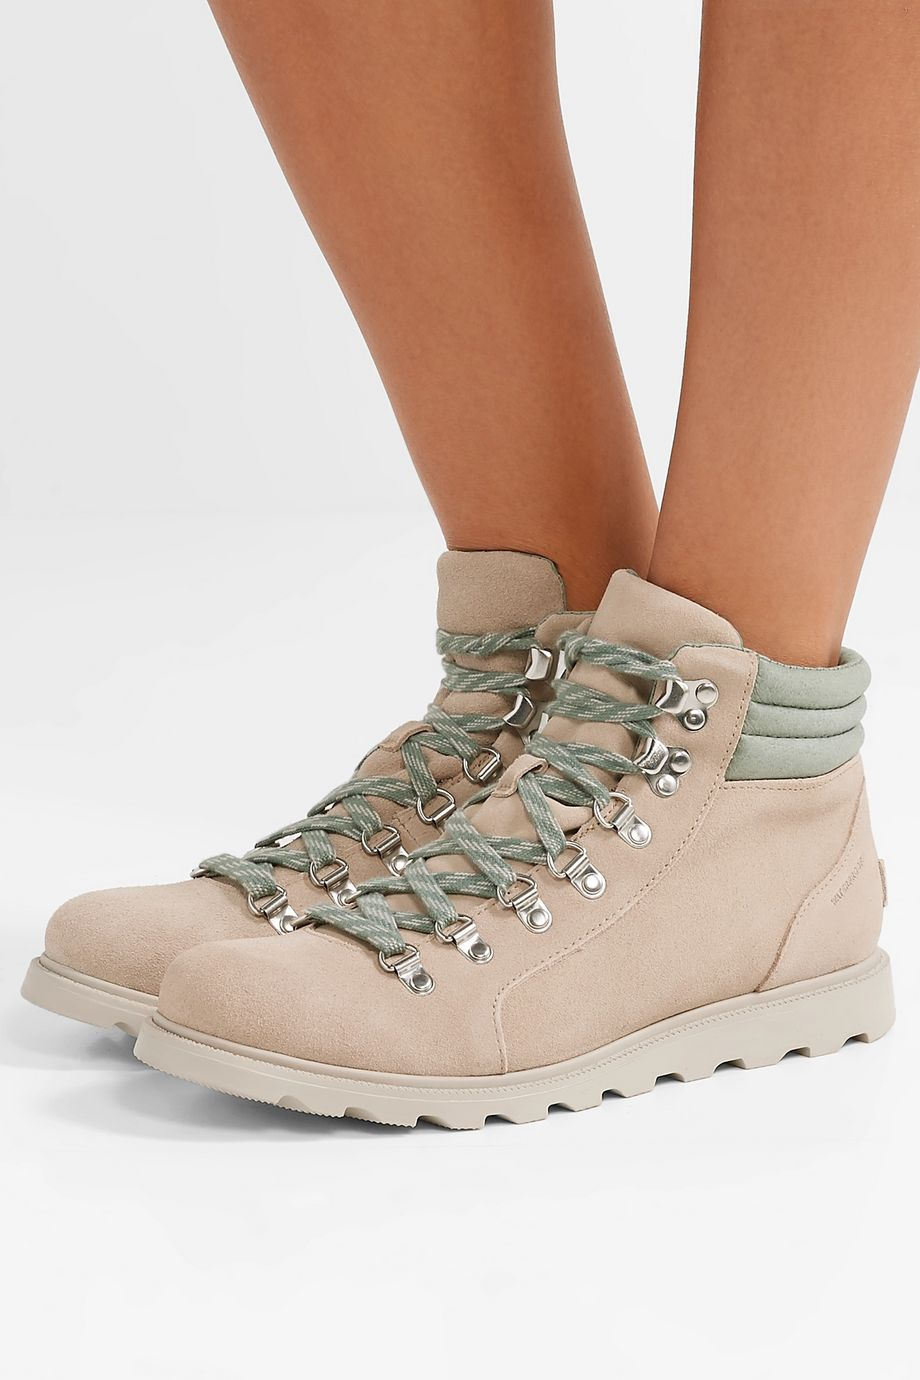 Sorel Ainsley Conquest waterproof suede and leather ankle boots